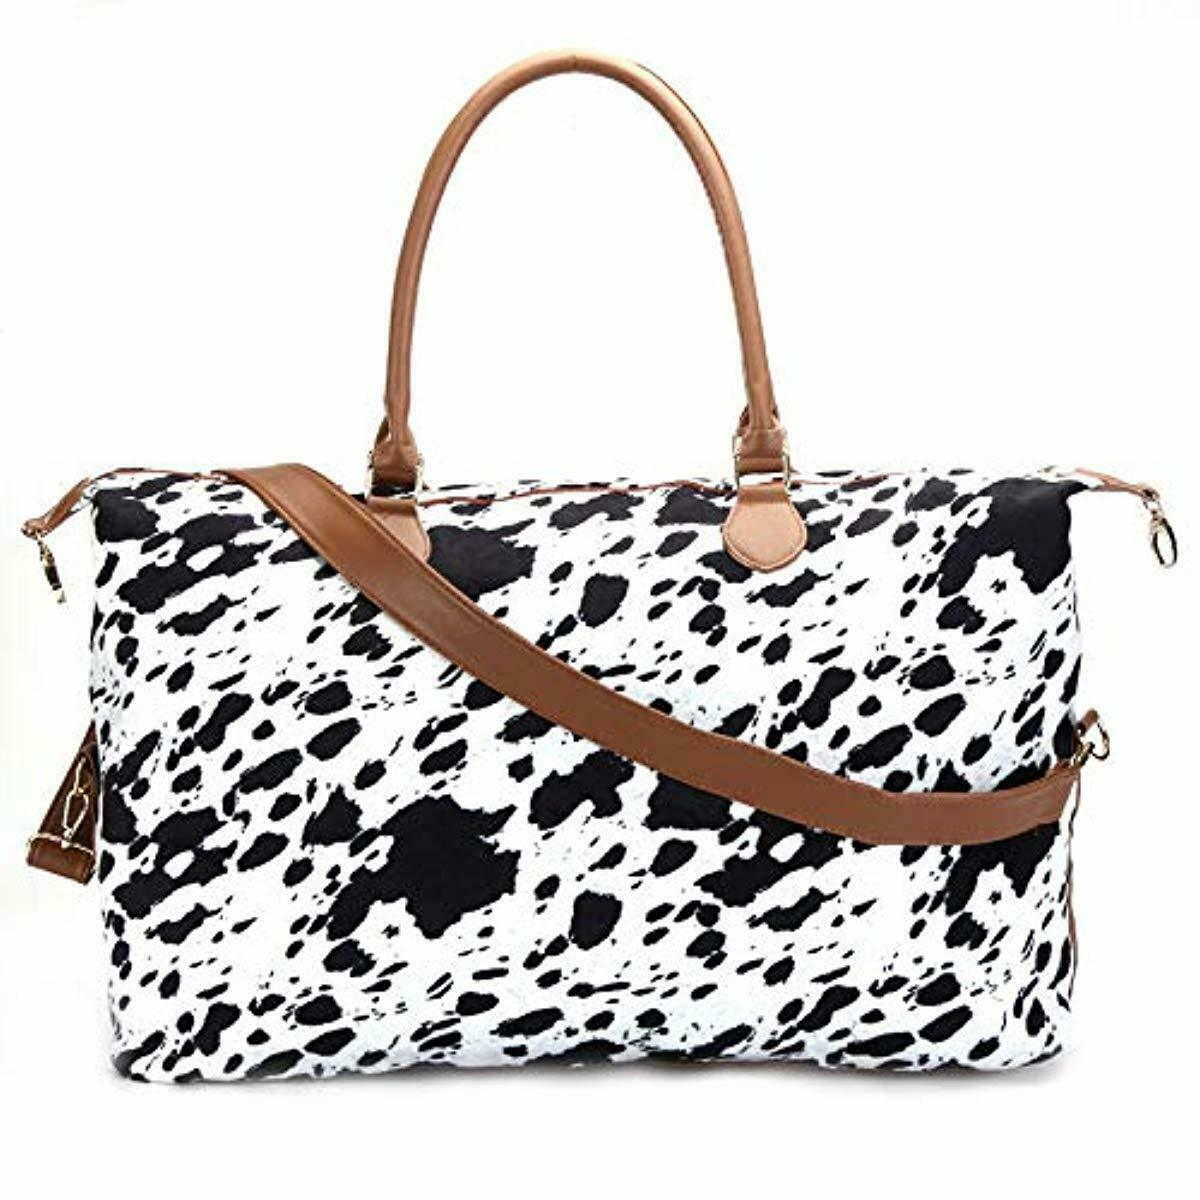 10 DESIGNS LADIES SILKY WEEKEND HANDBAG HOLDALL OVERNIGHT TRAVEL SHOPPING BAG